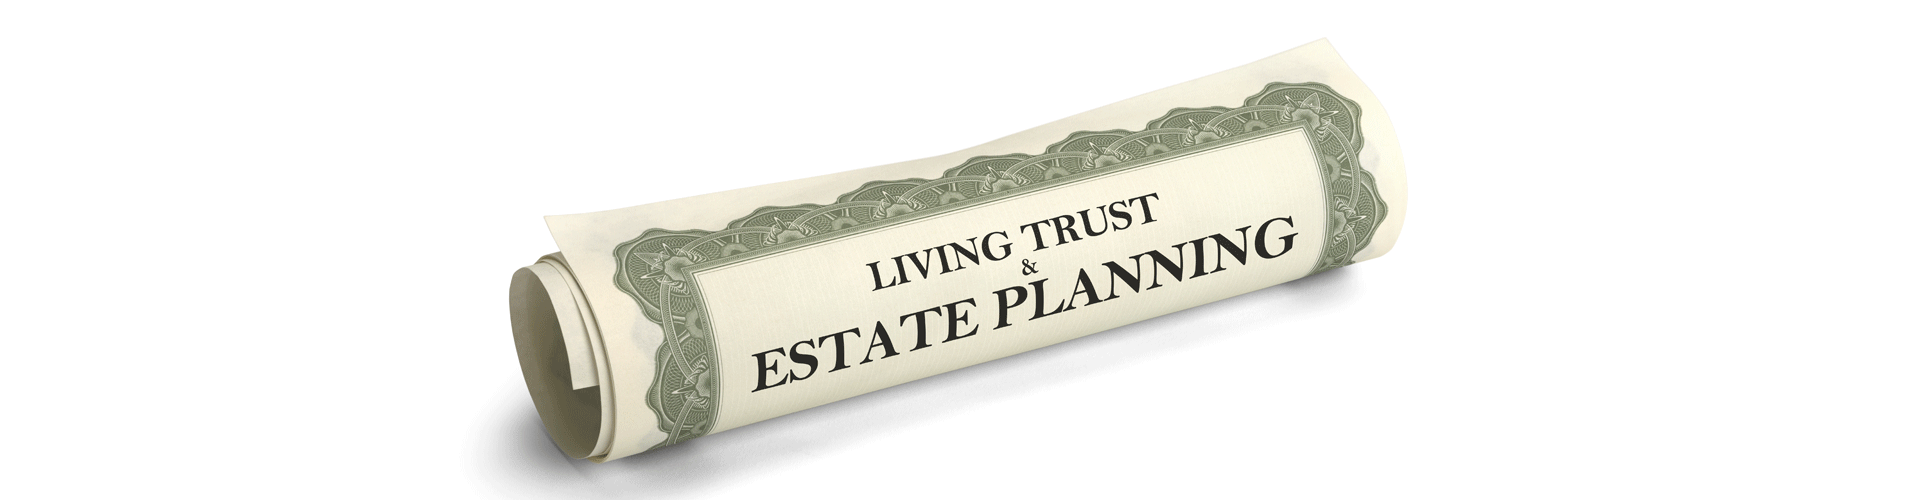 Controlling-Estate-Planning-Through-Trusts-